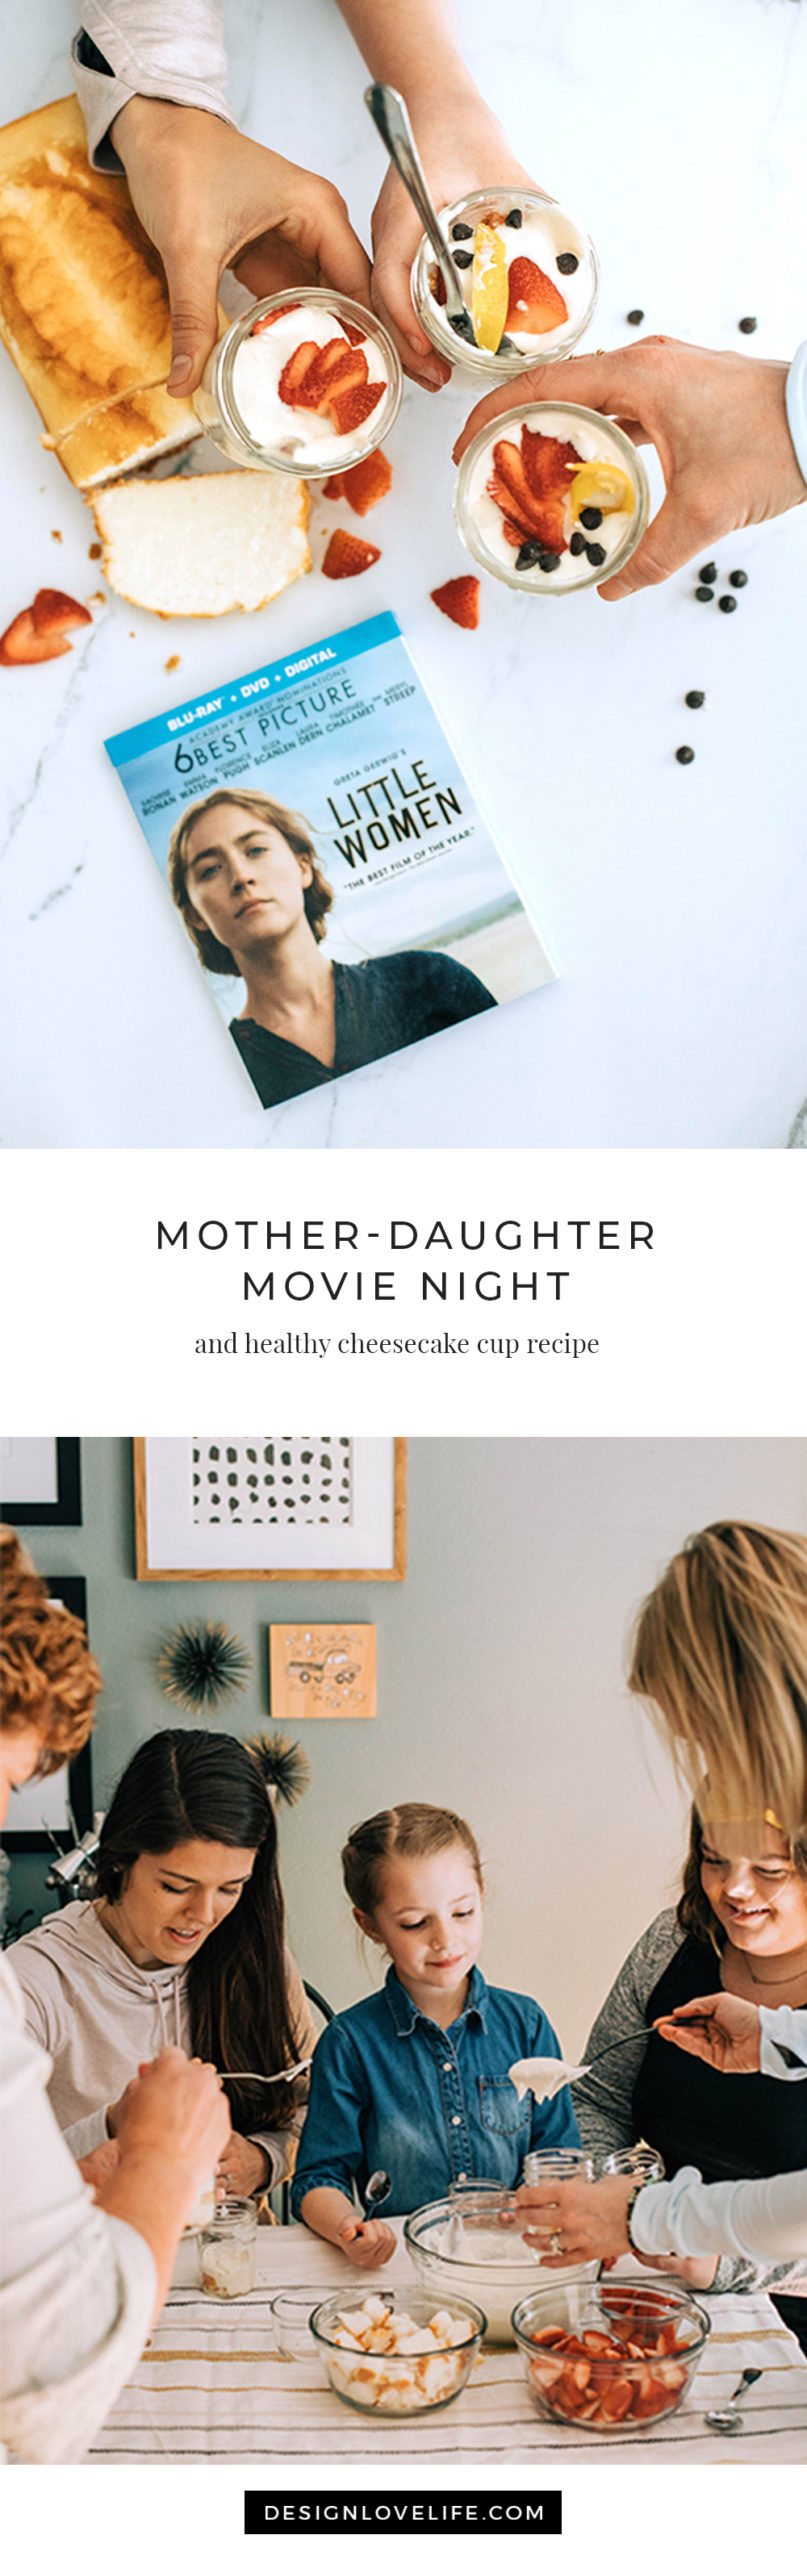 Little Women Movie, Recipe for Mother-Daughter Movie Date, Healthy Cheesecake Cups - Annie Johnson, Design Love Life